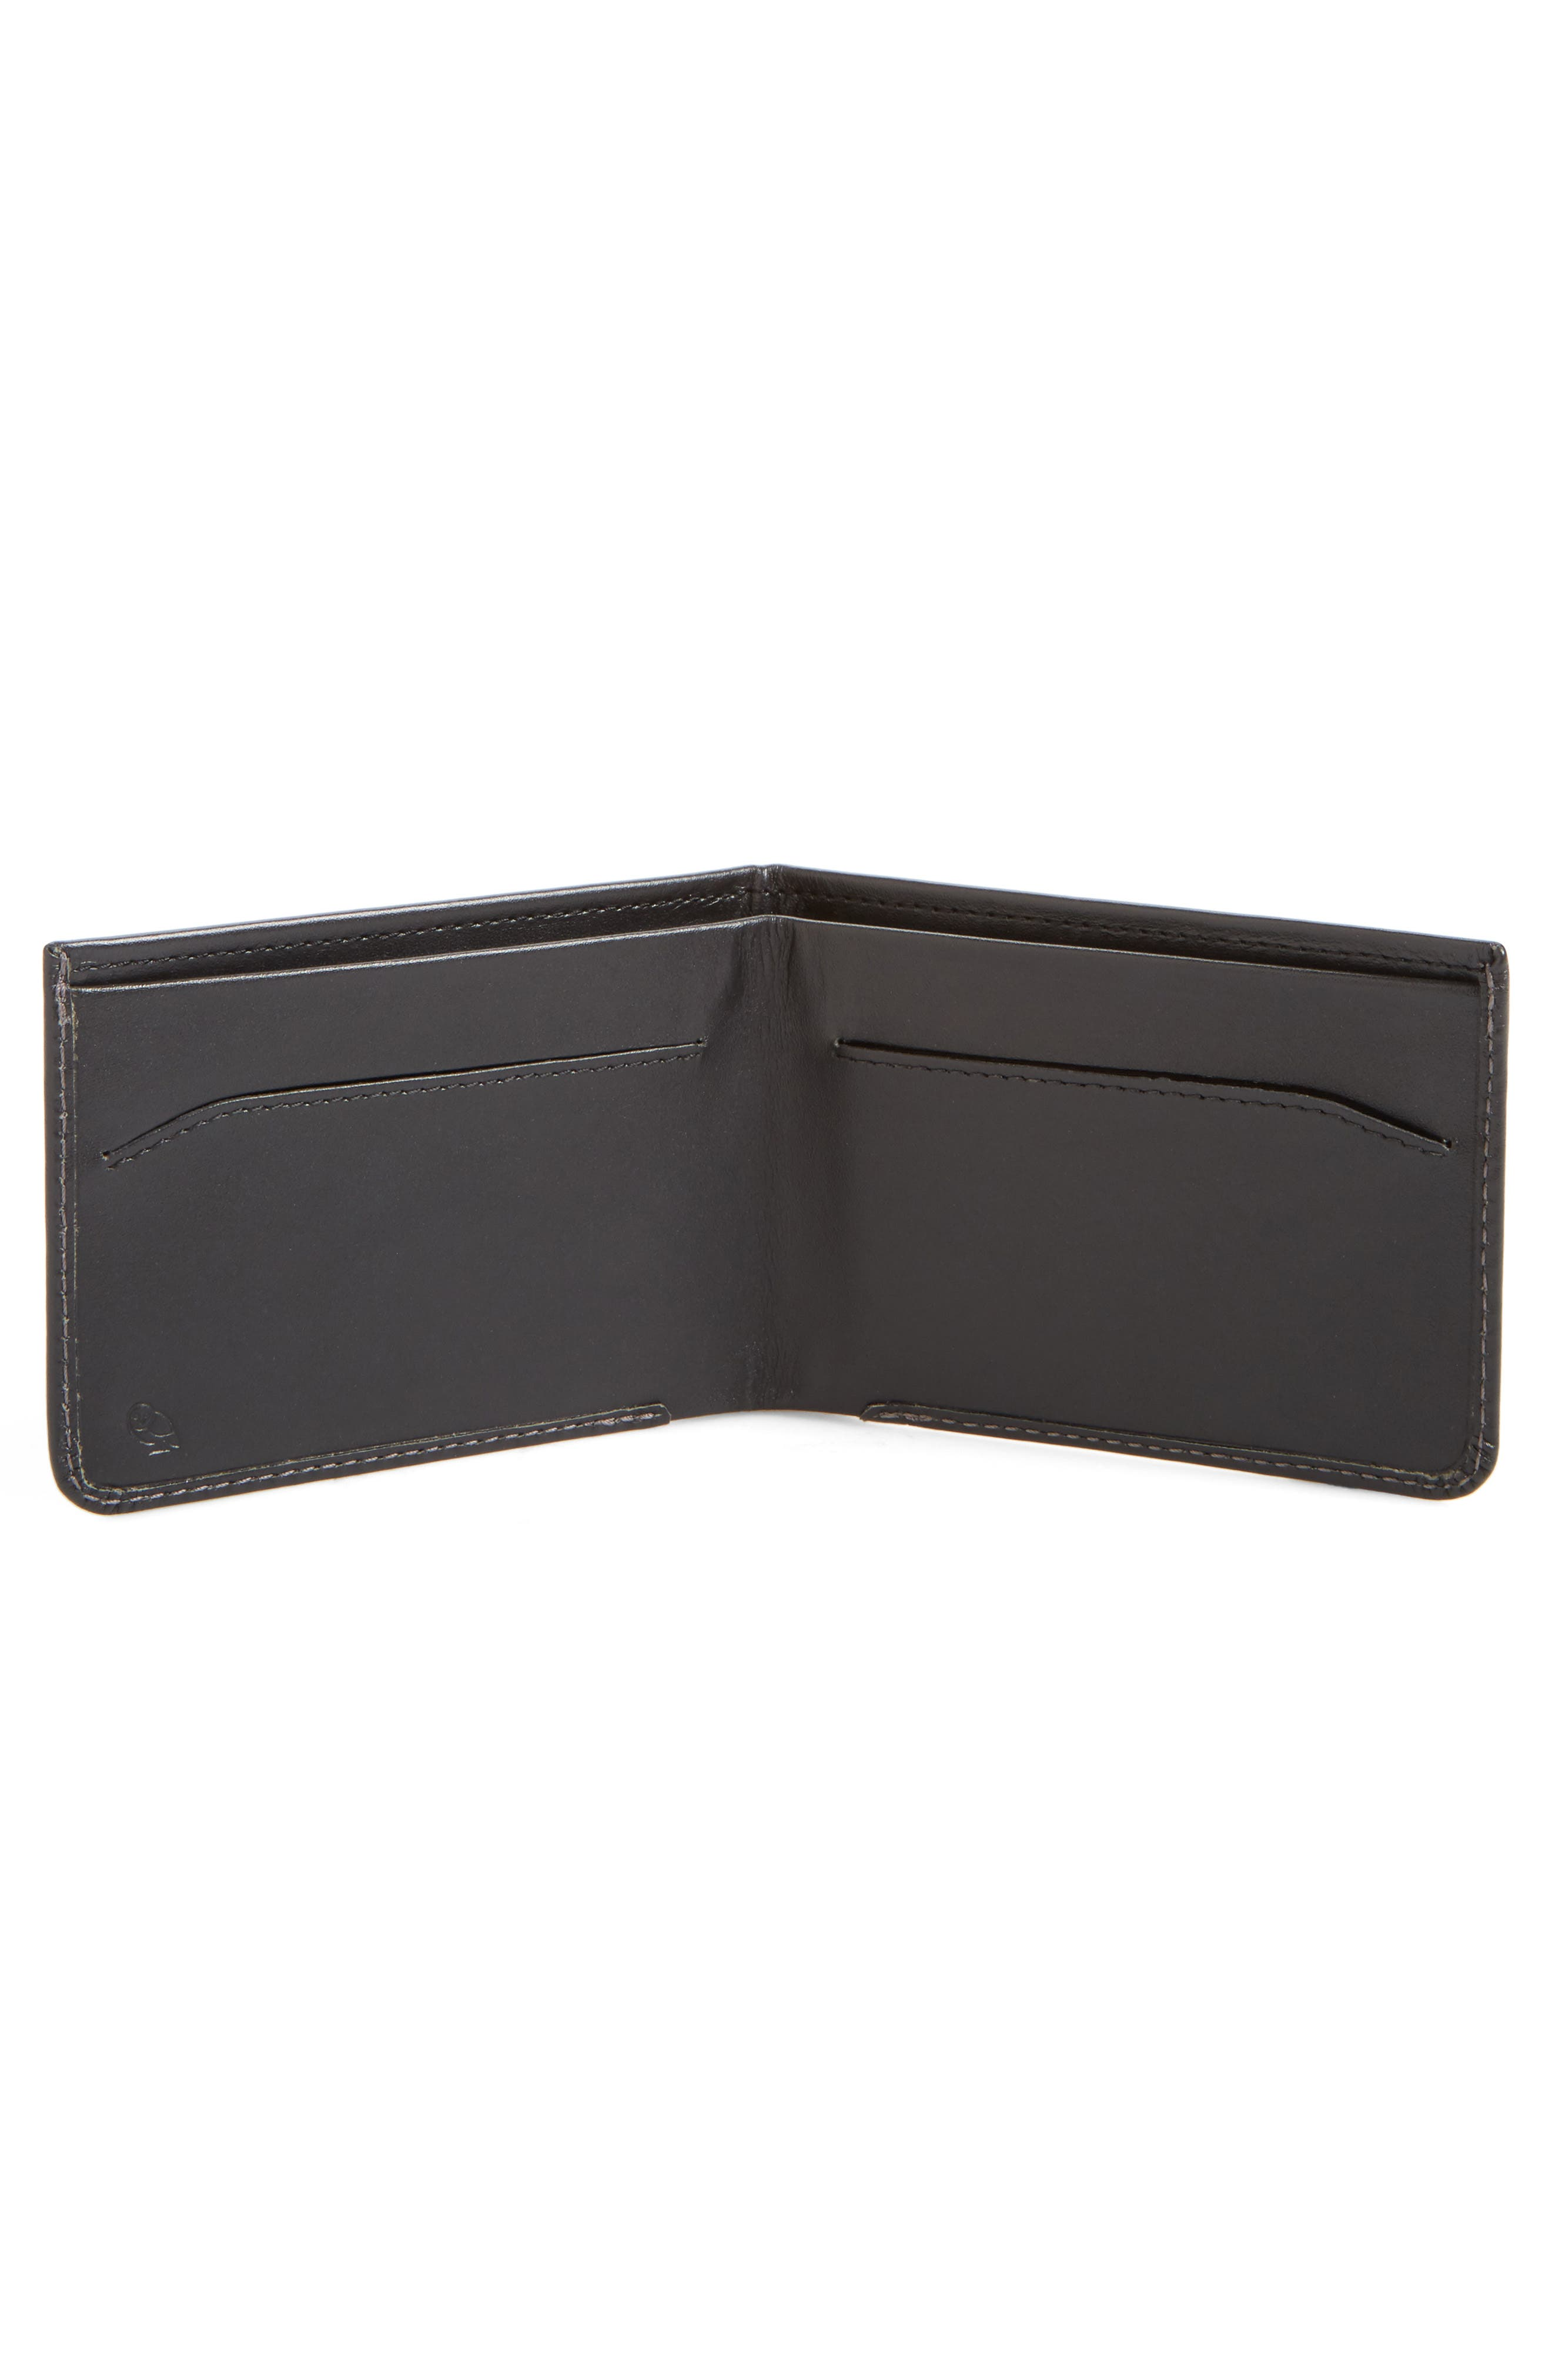 Low Down Leather Wallet,                             Alternate thumbnail 2, color,                             001